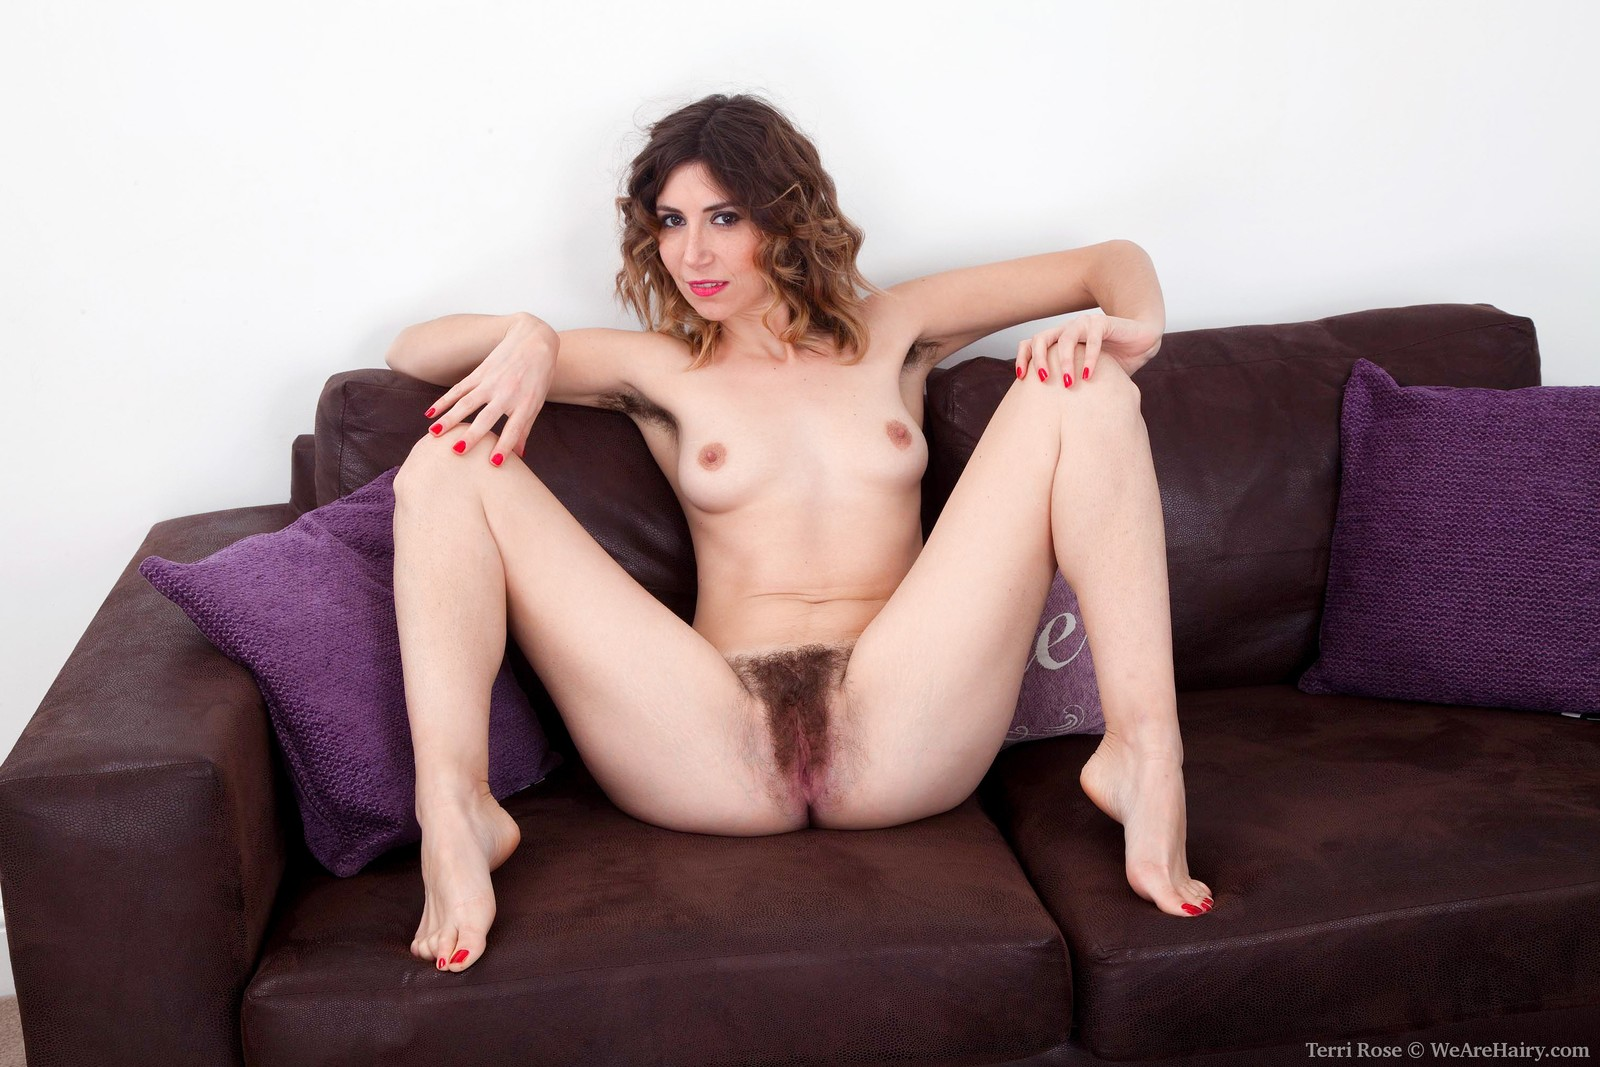 terri-rose-is-in-her-white-dress-on-her-purple-sofa-and-showing-off-her-very-hairy-pits.-she-strips-naked-and-shows-us-her-hairy-pussy-too.-she-bends-over-spreads-wide-and-shows-all-of-it-off-for-us.9.jpg